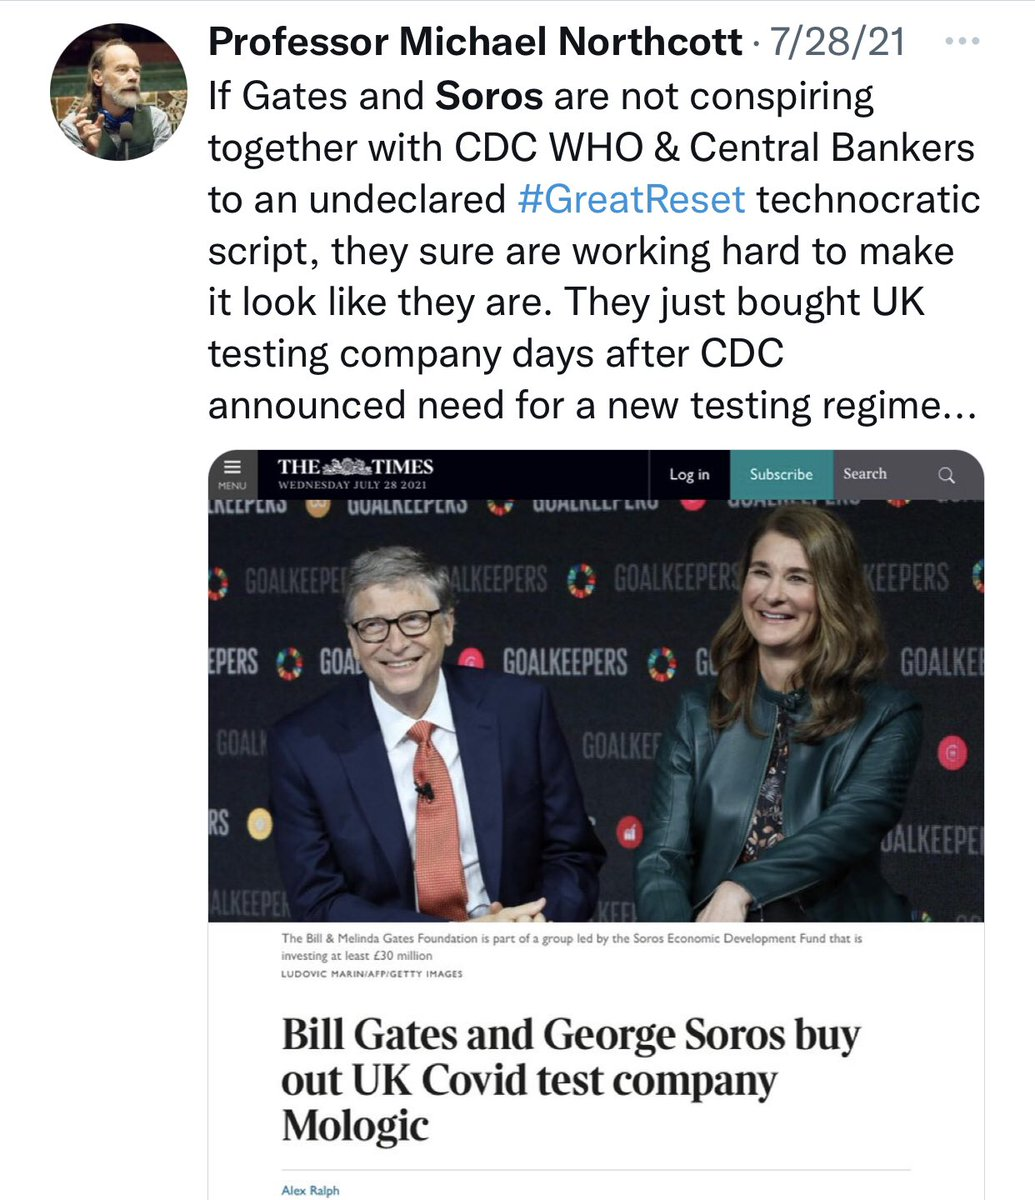 """The individual in this screenshot also believes that George Soros and """"central bankers"""" are working on this secret agenda and using COVID-19 as part of it. Cc: @GCAntiVaxxers"""